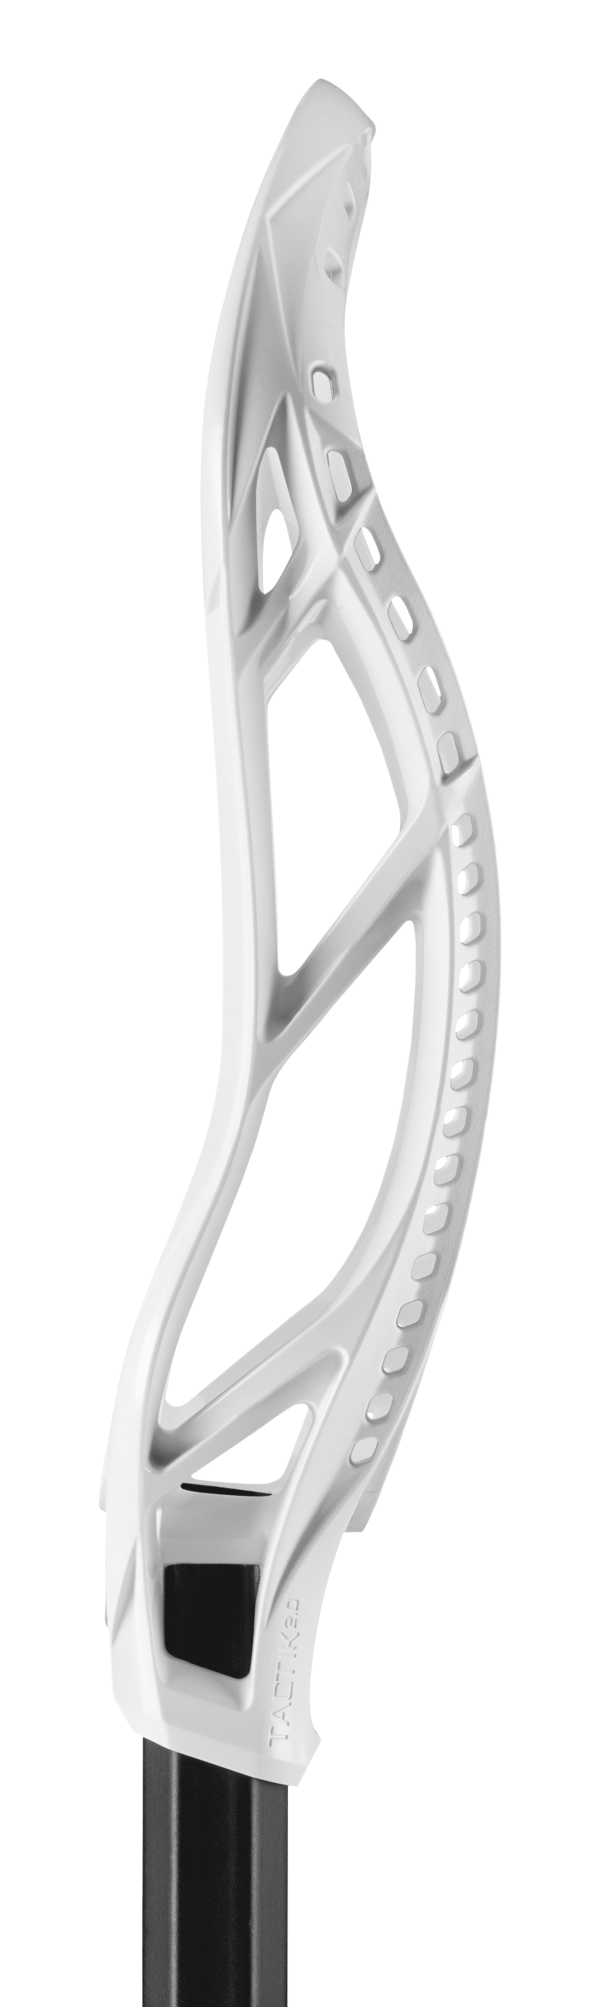 TACTIK_2.0_HEAD_ATTACK_WHITE_UNSTRUNG_SIDE-1.png